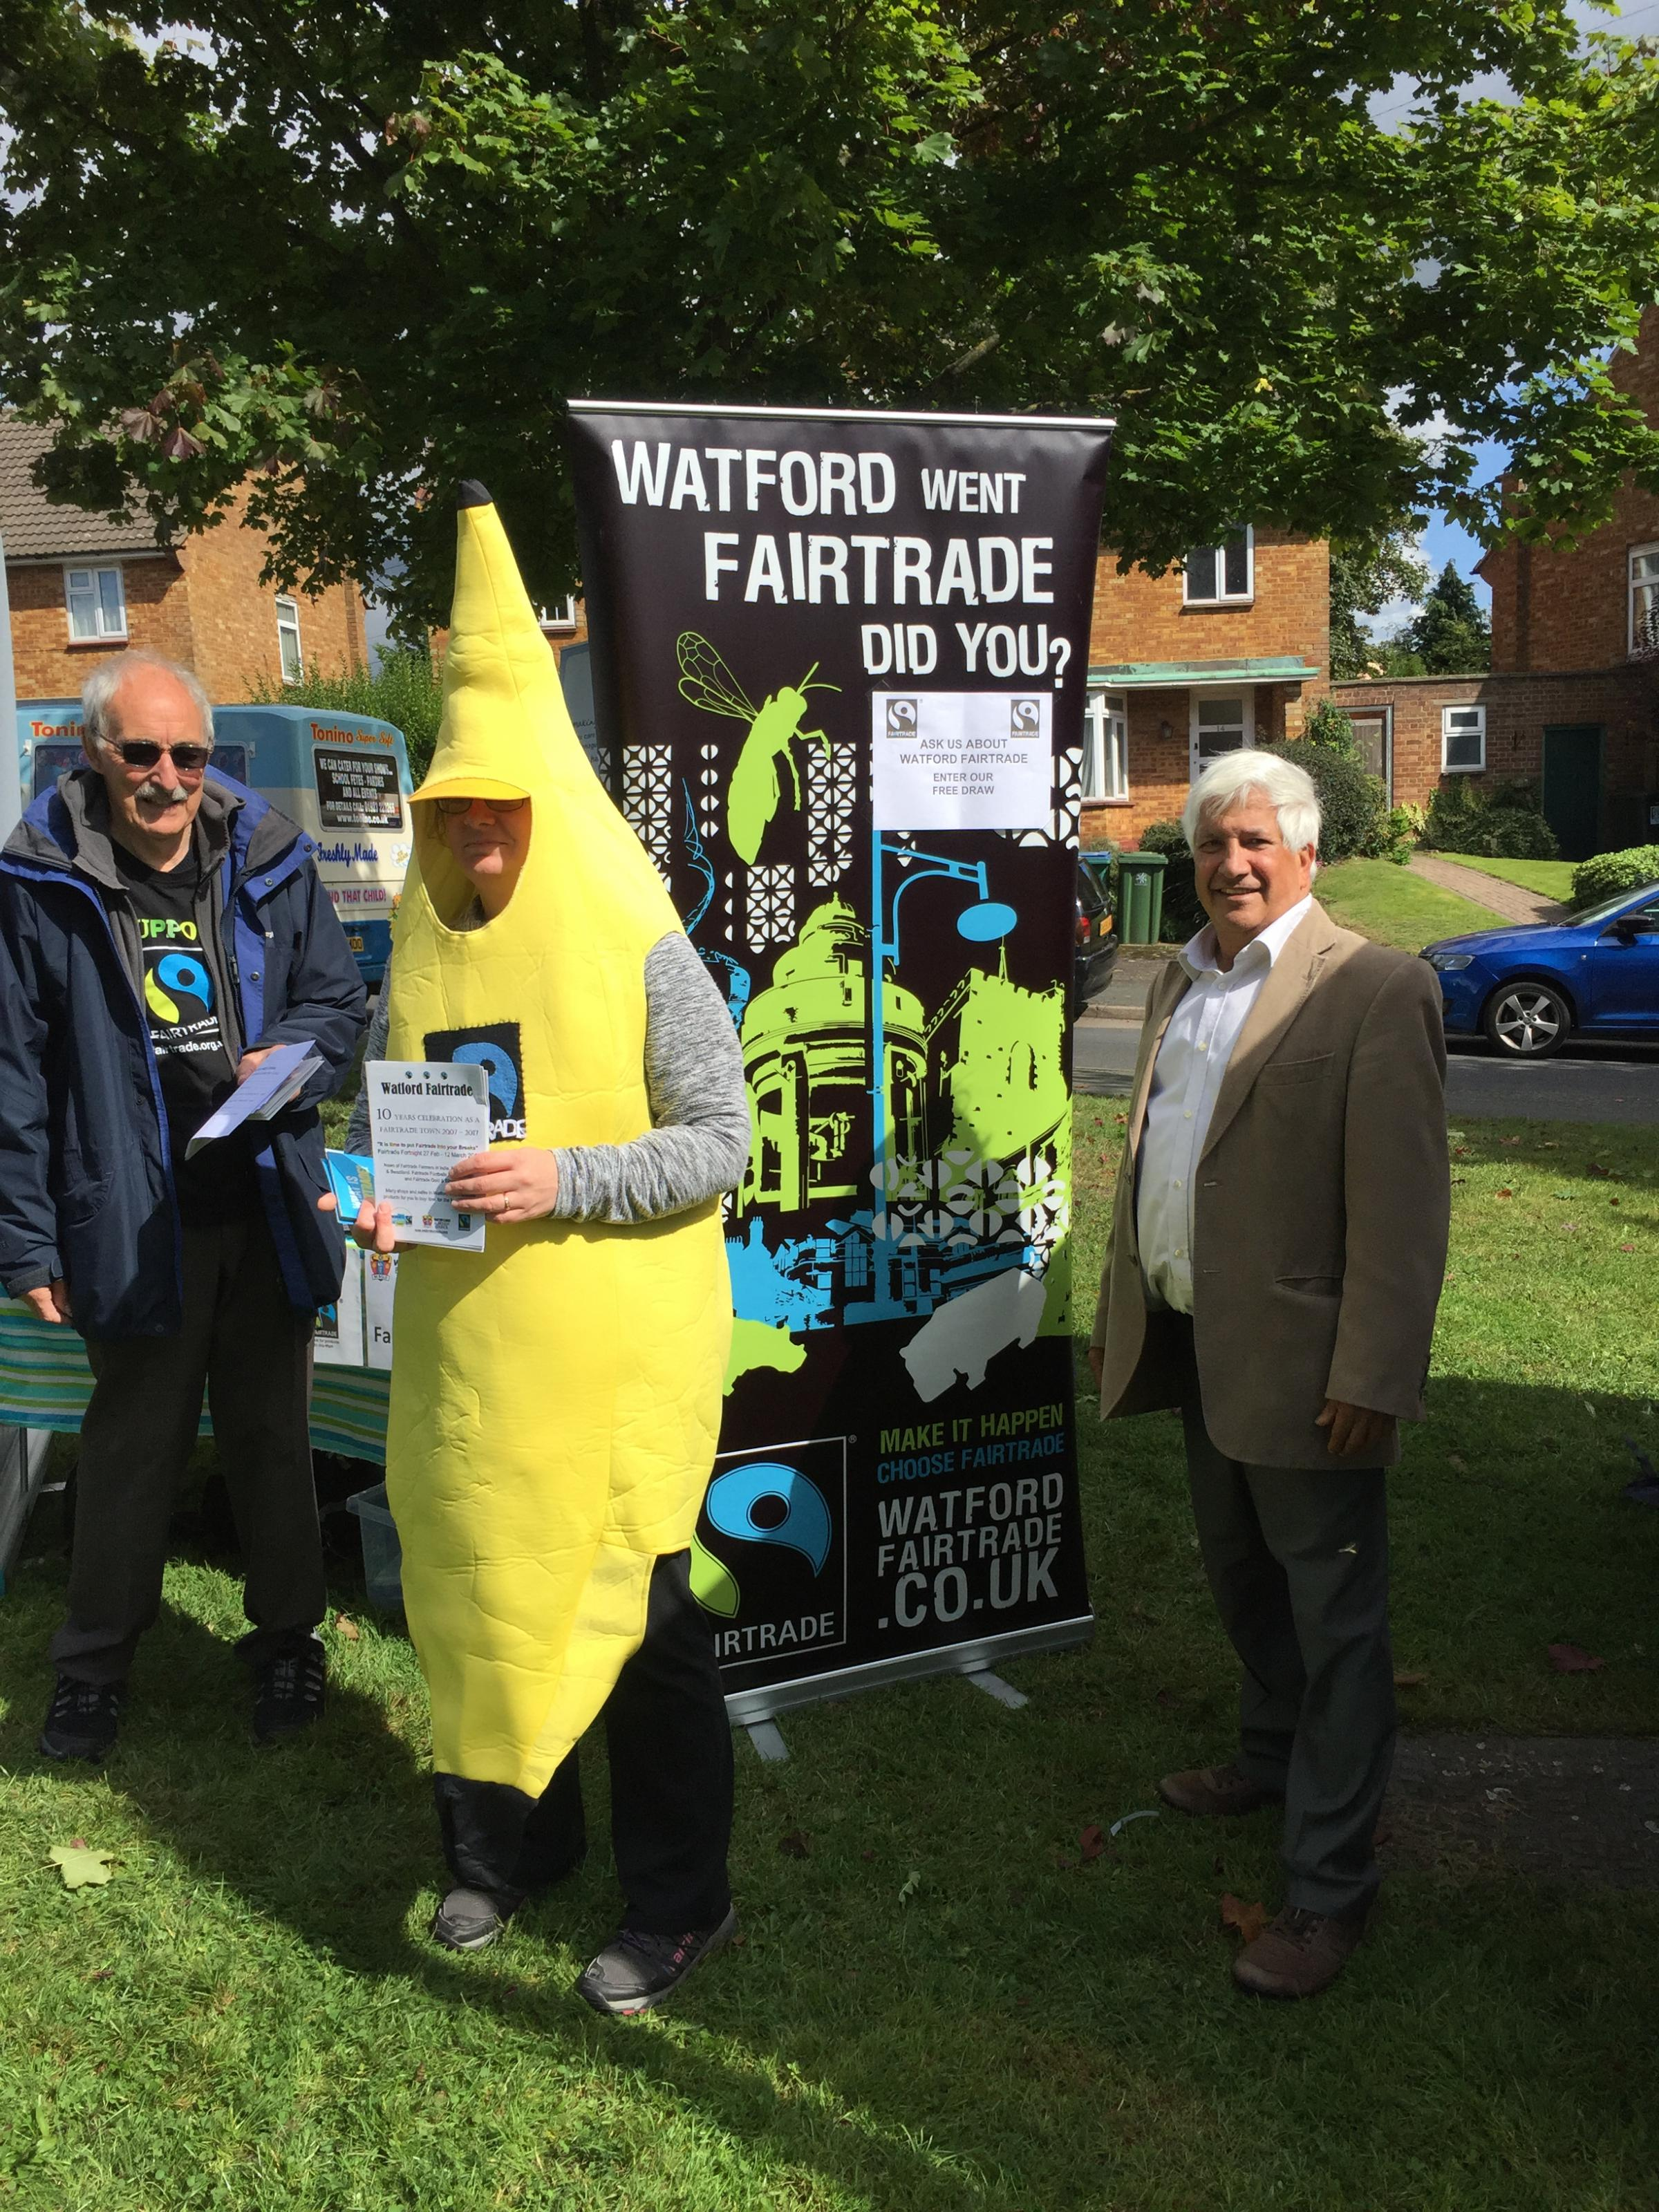 Cllr Martins campaigning to get Watford shopping fairtrade this Christmas